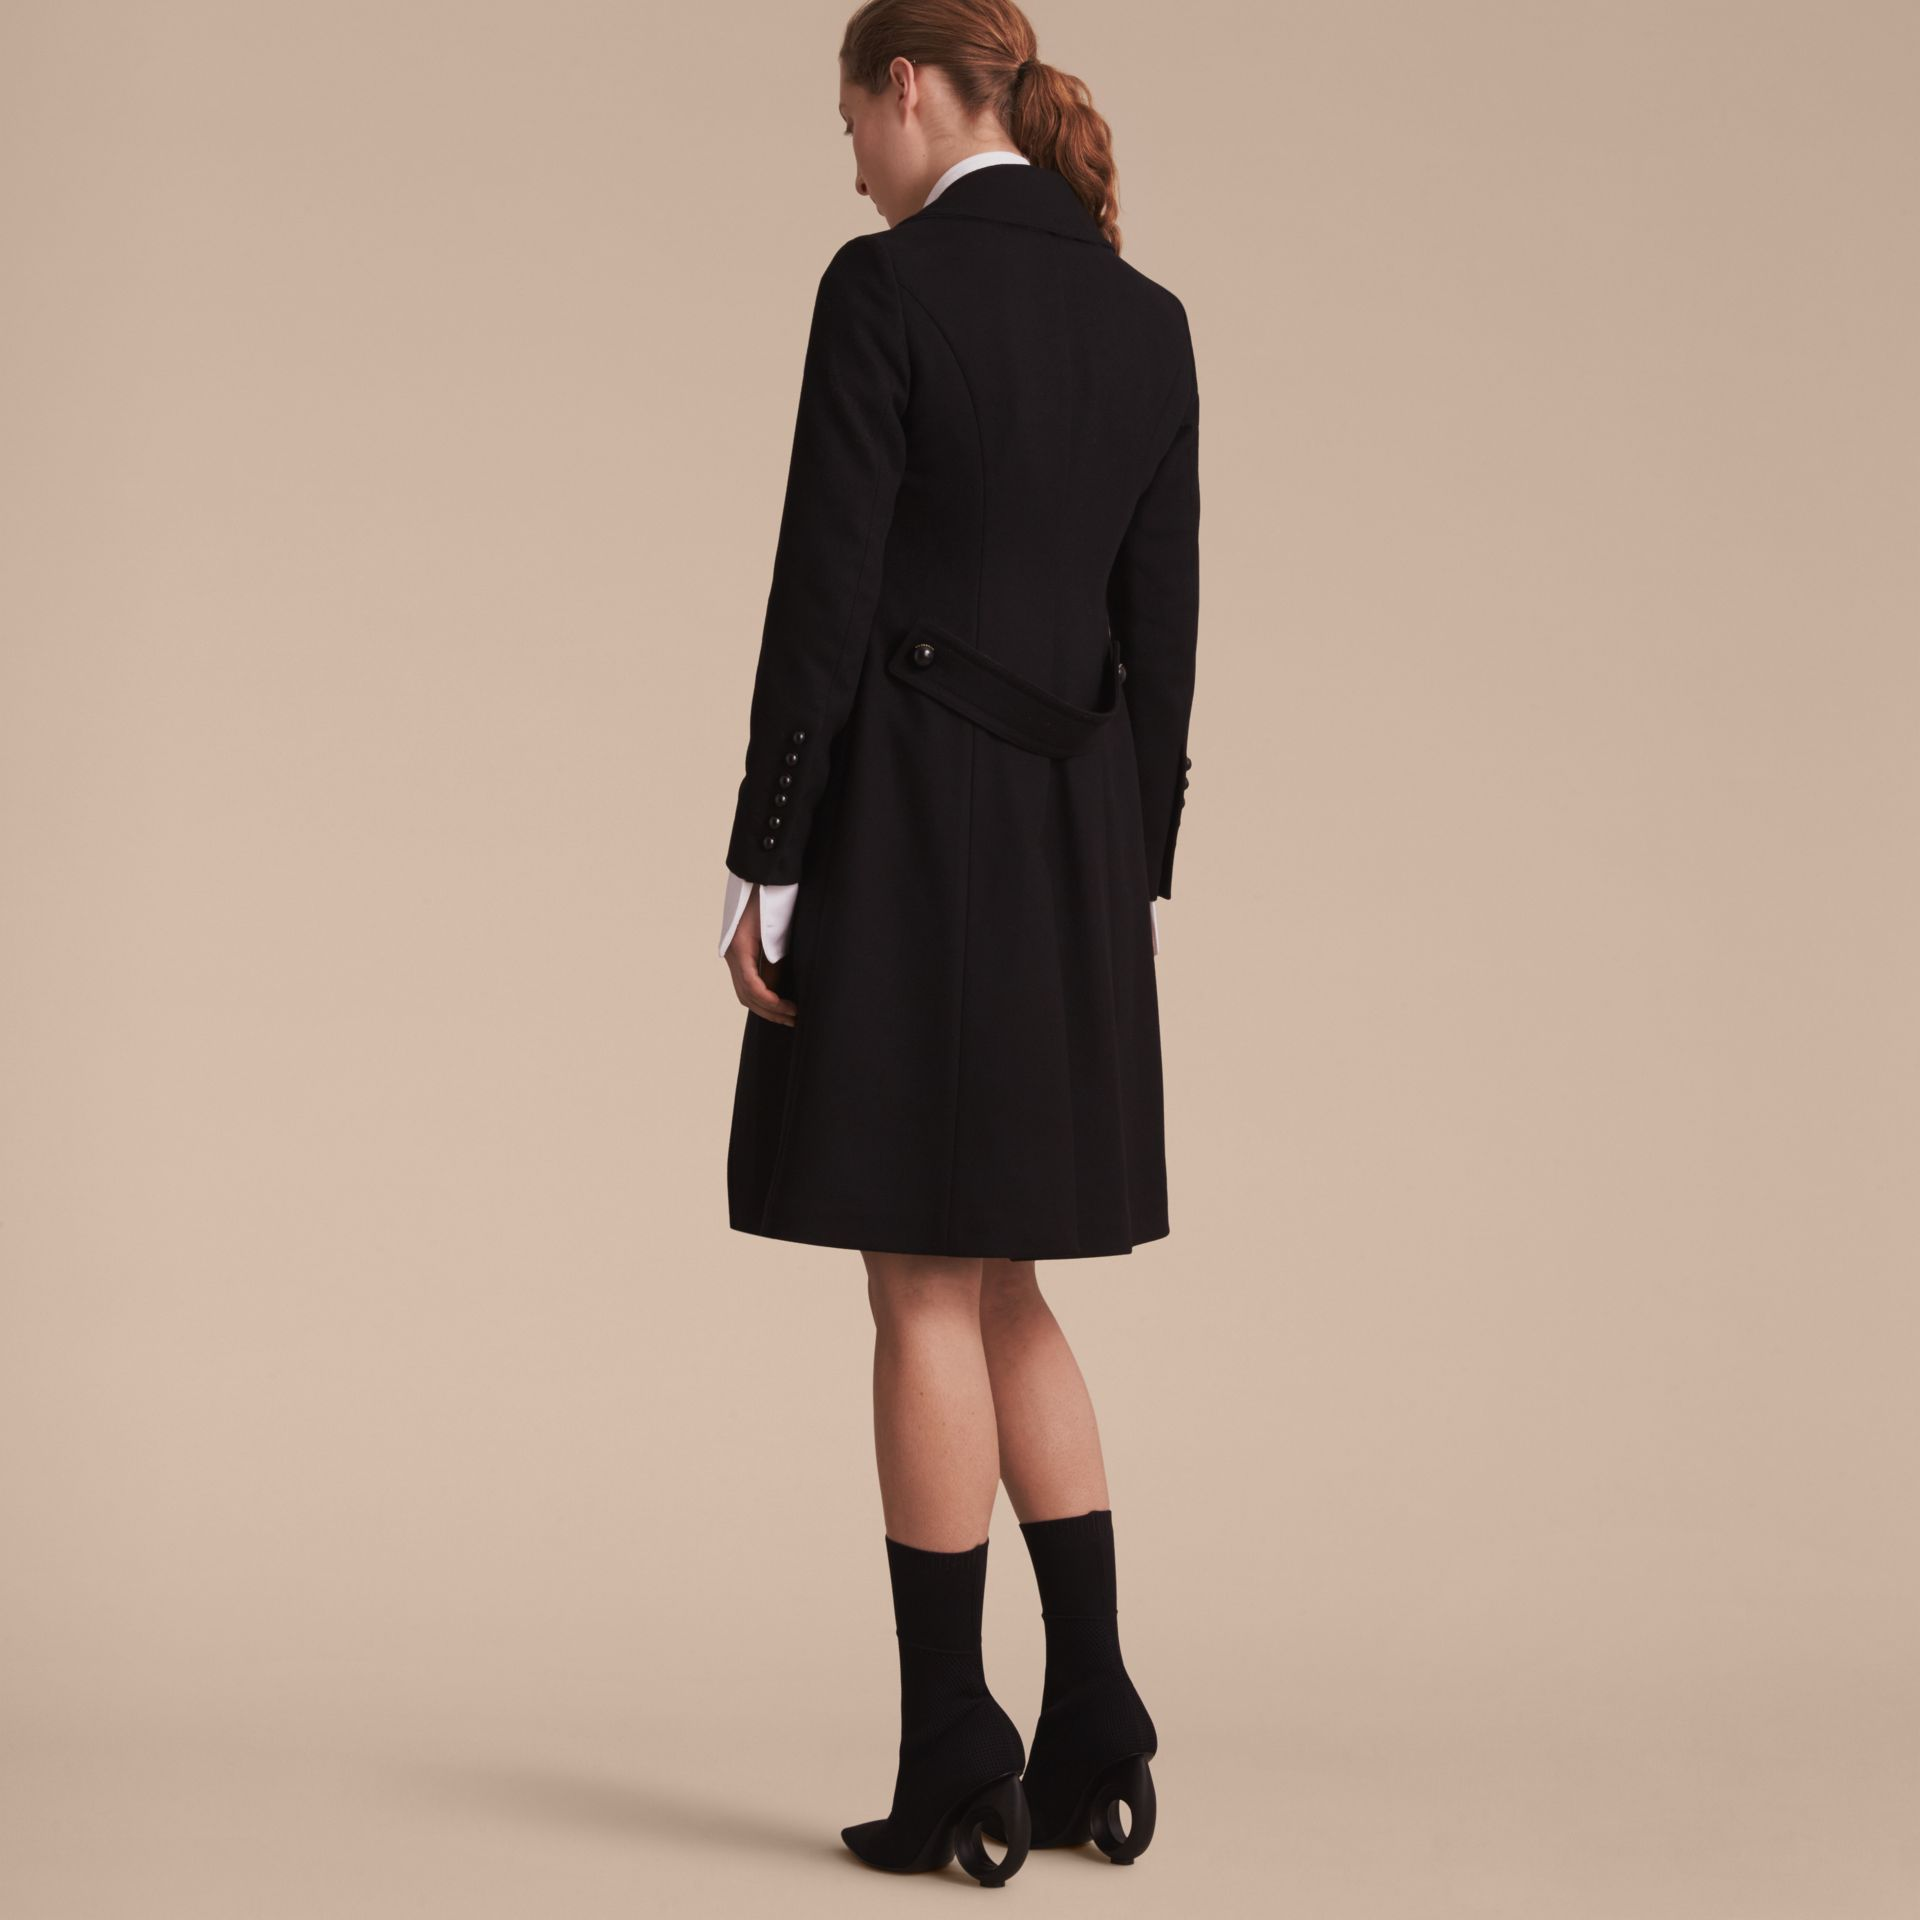 Wool Blend Double-breasted Coat in Black - Women | Burberry Canada - gallery image 3